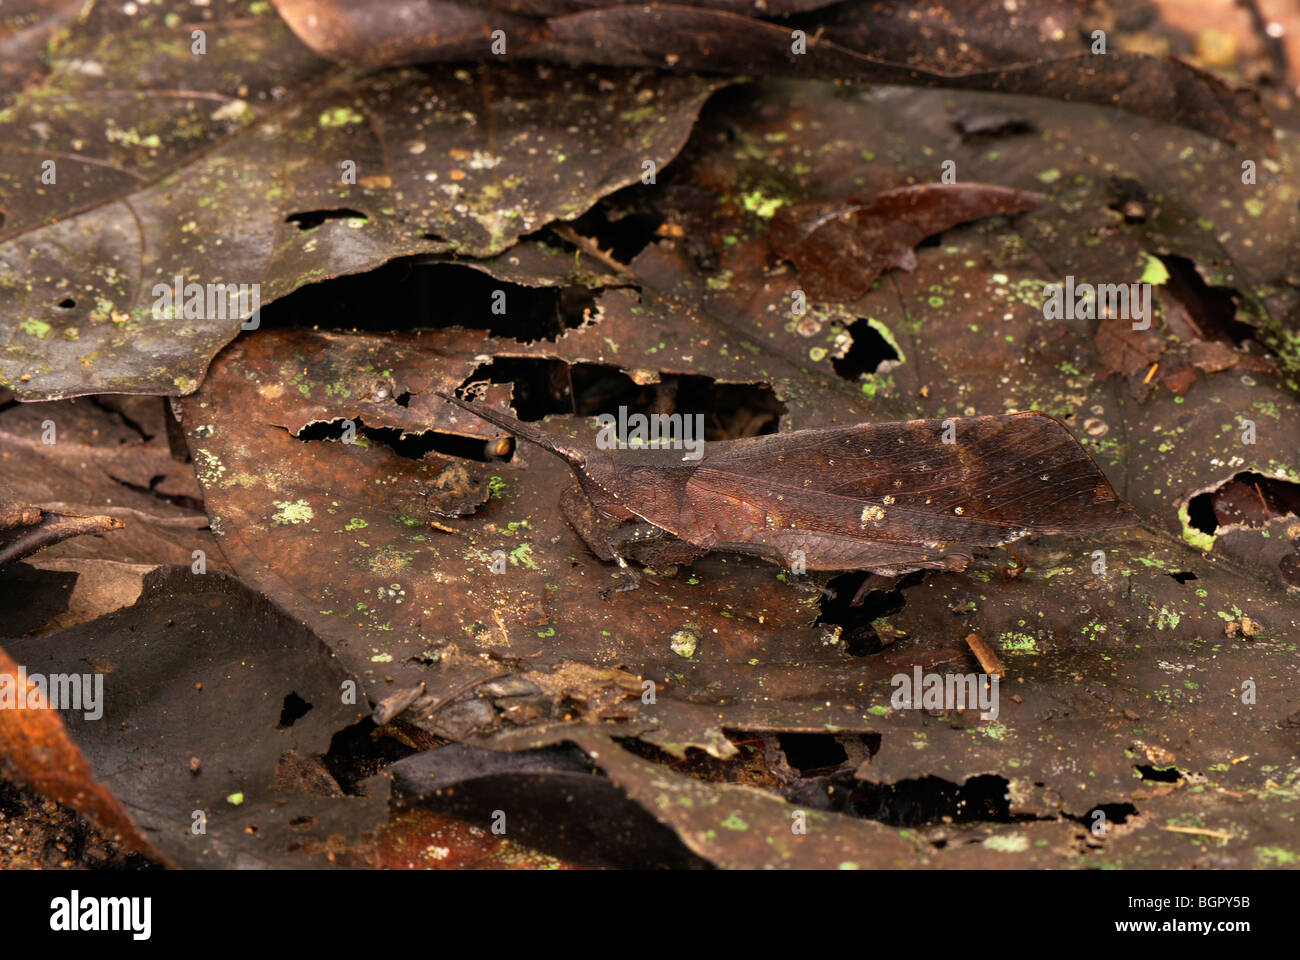 Dead-leaf Grasshopper (Orthoptera), camouflaged on dead leaves on the forest floor, Sabah, Borneo, Malaysia - Stock Image